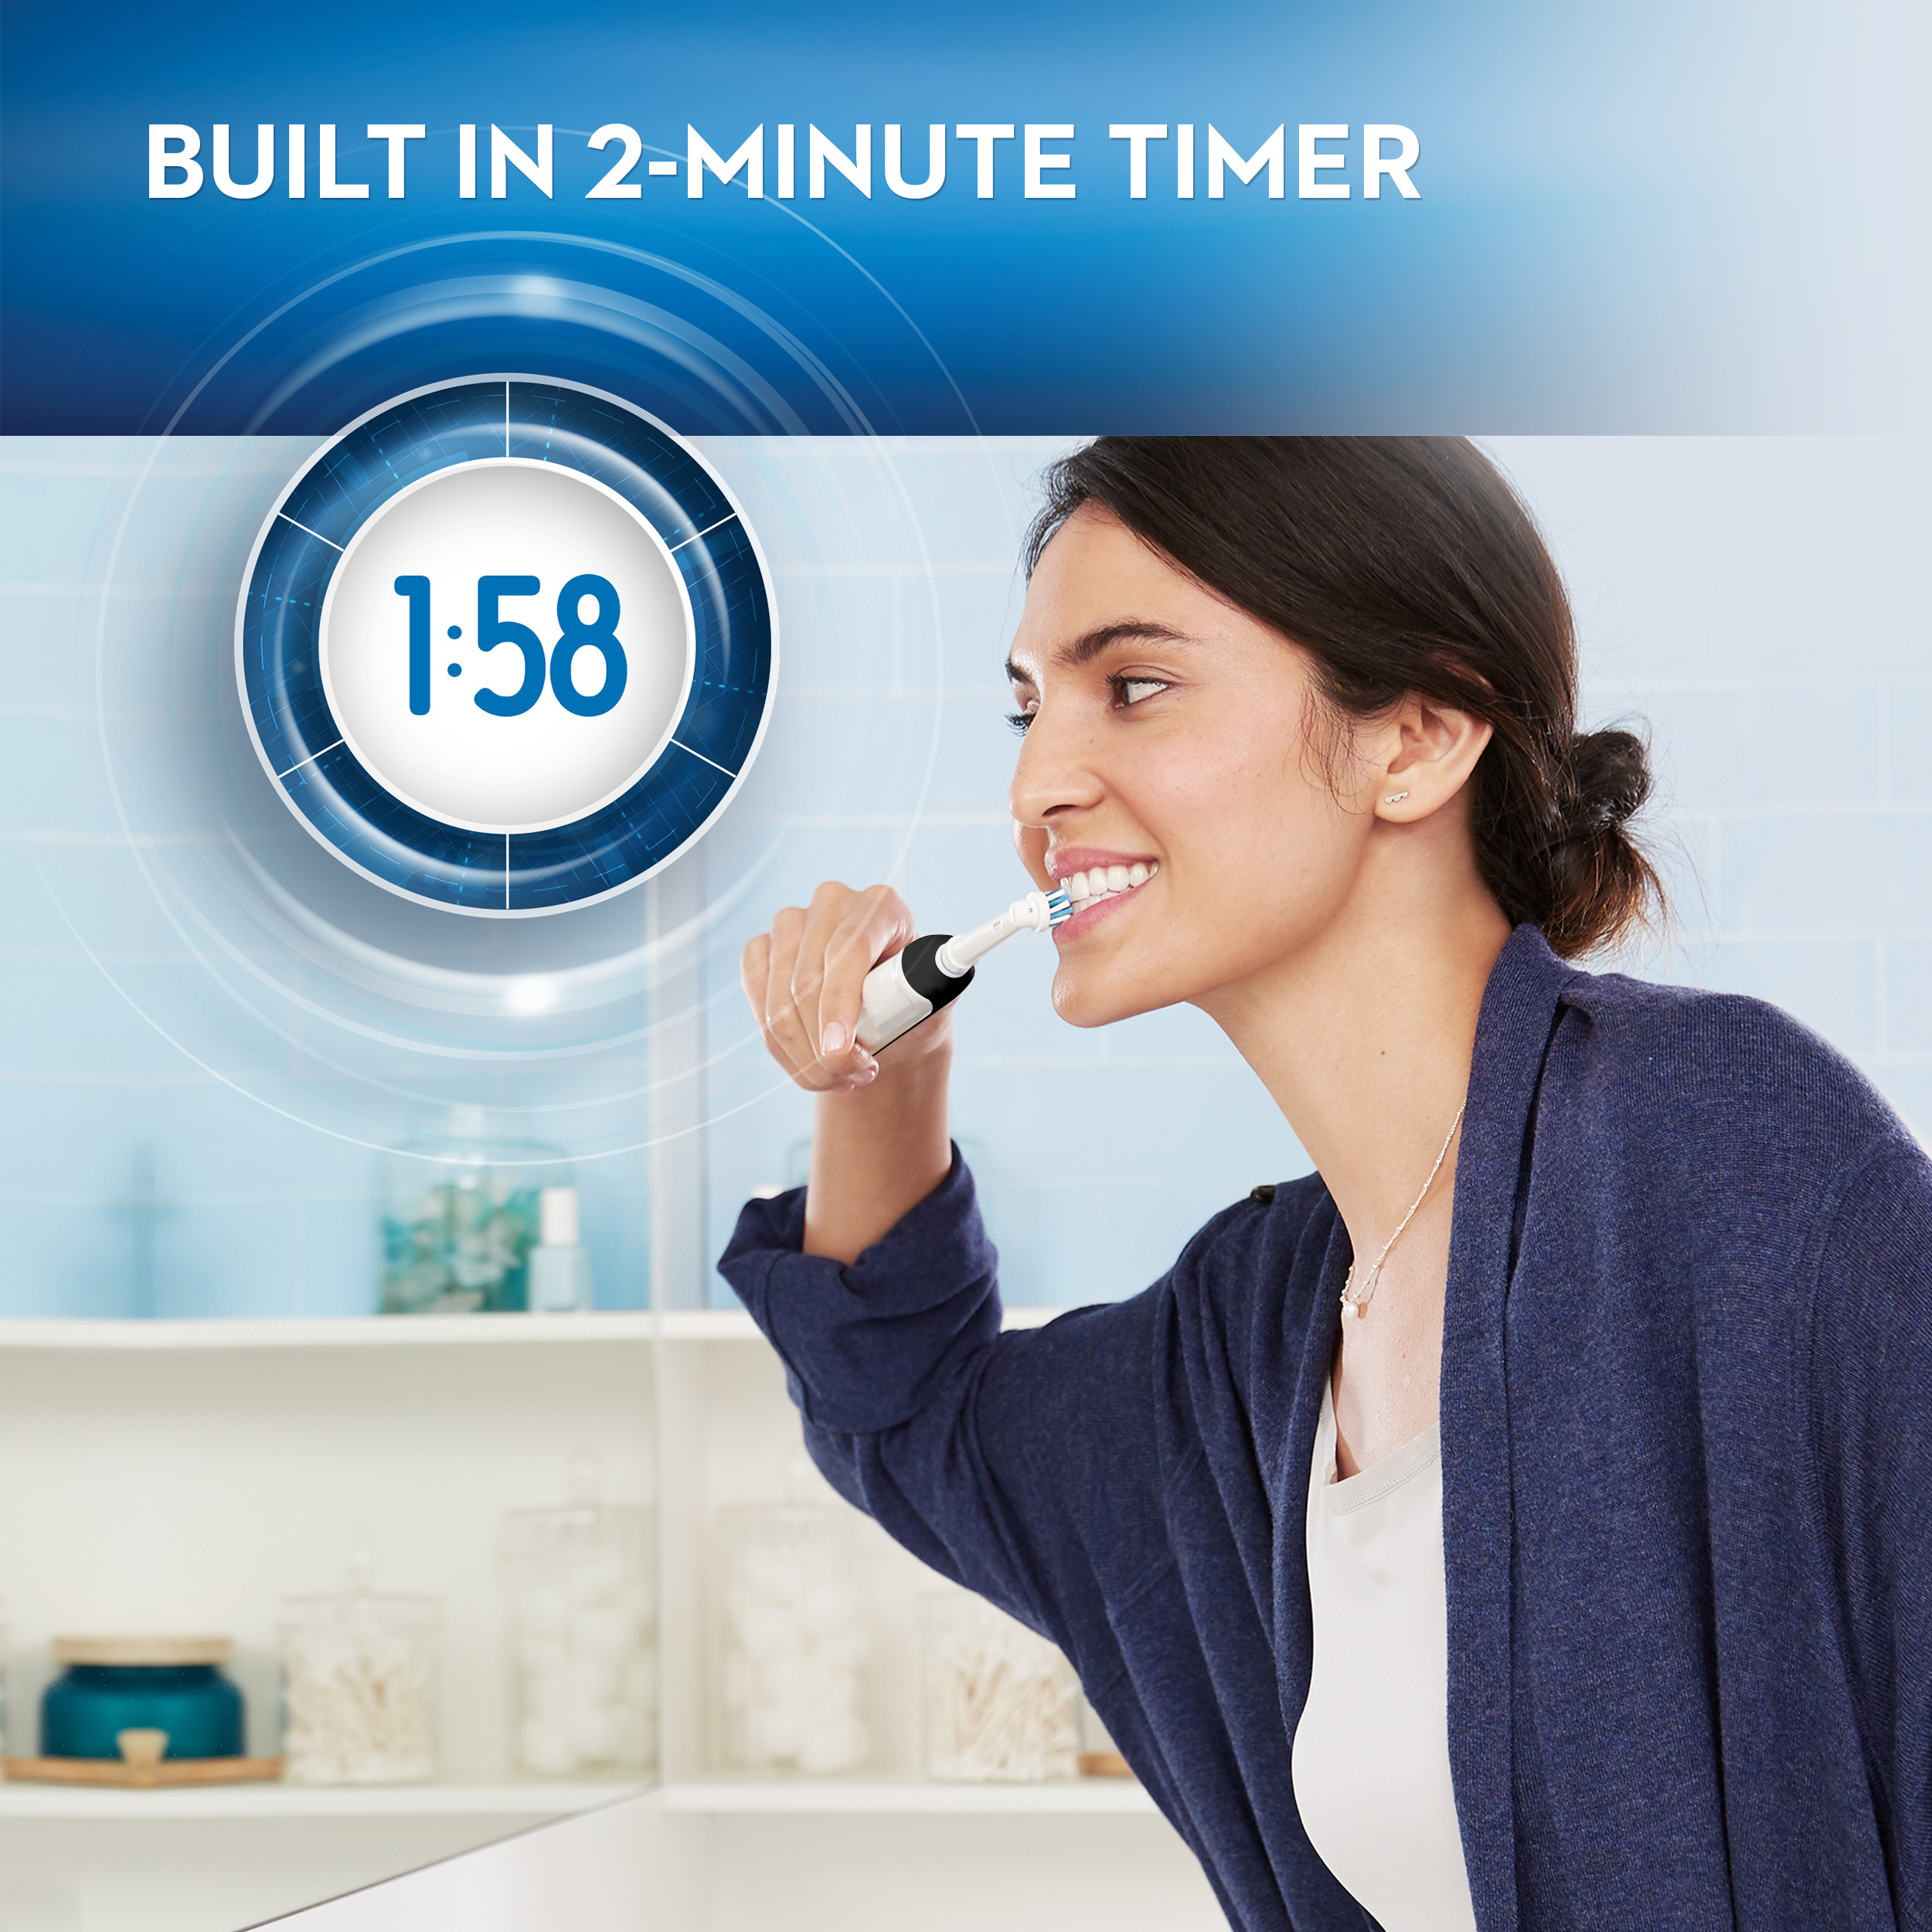 Model is brushing her teeth with an electric toothbrush